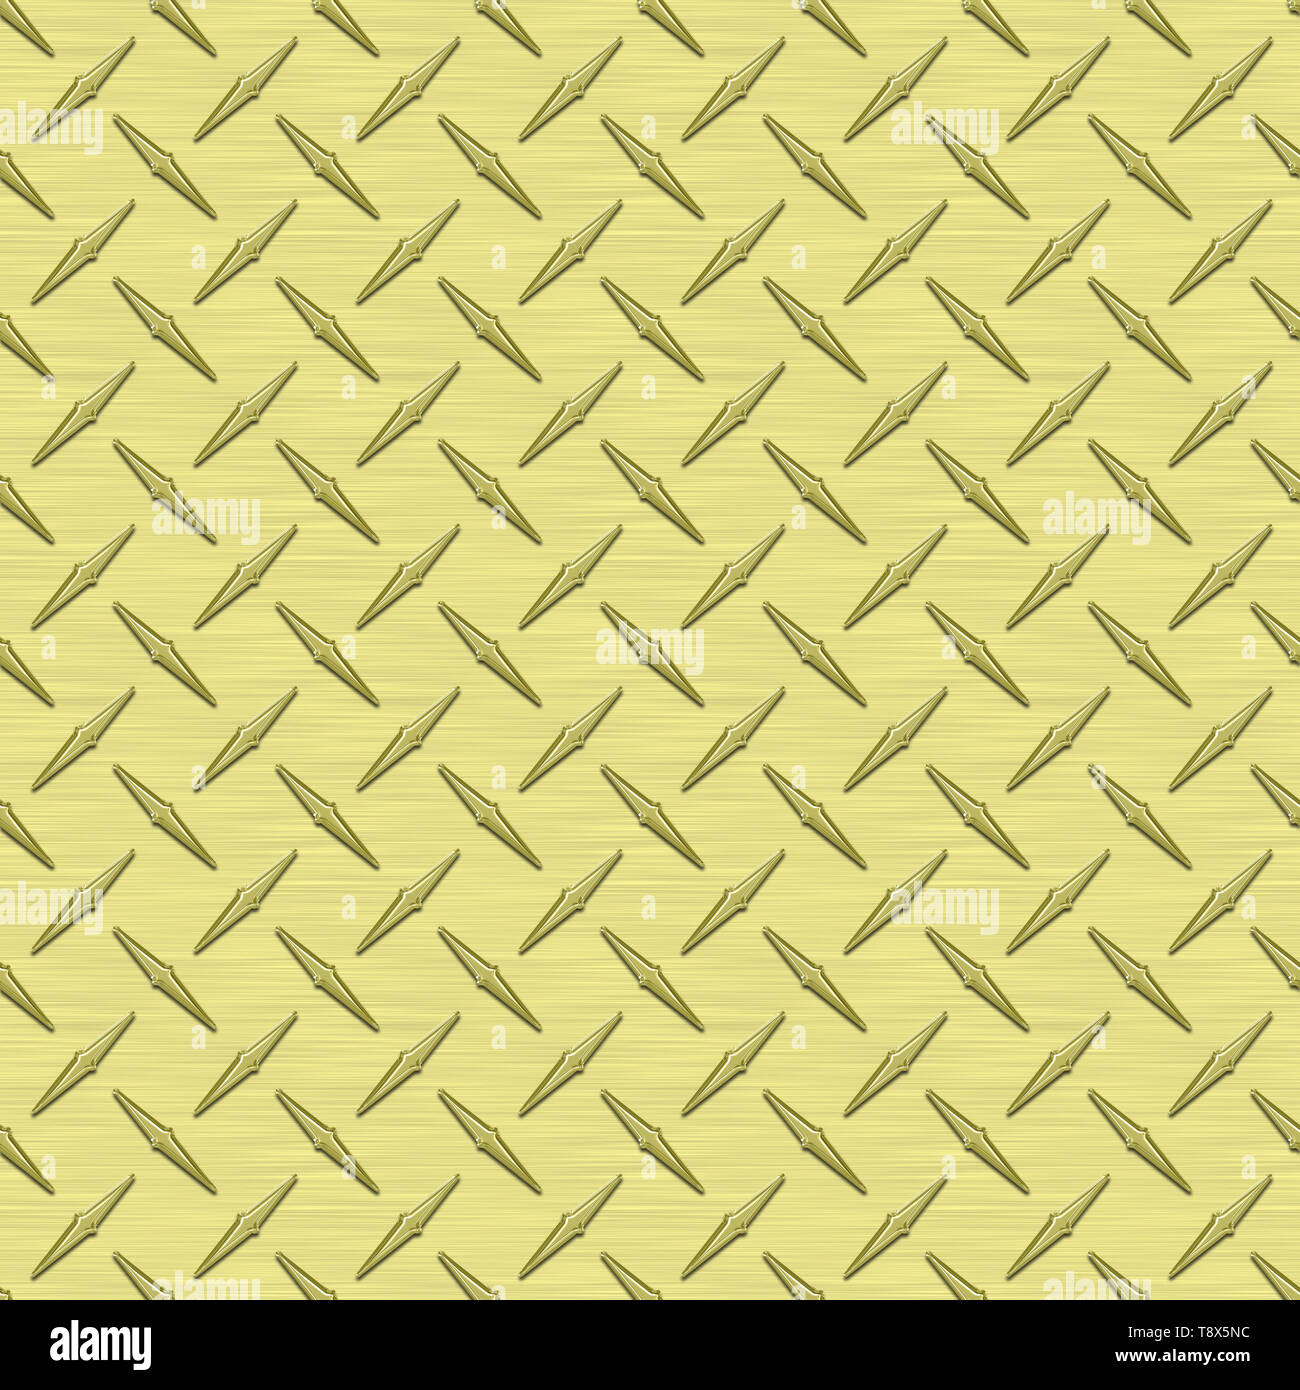 Pale Yellow Diamond Plate Metal Seamless Texture Tile - Stock Image